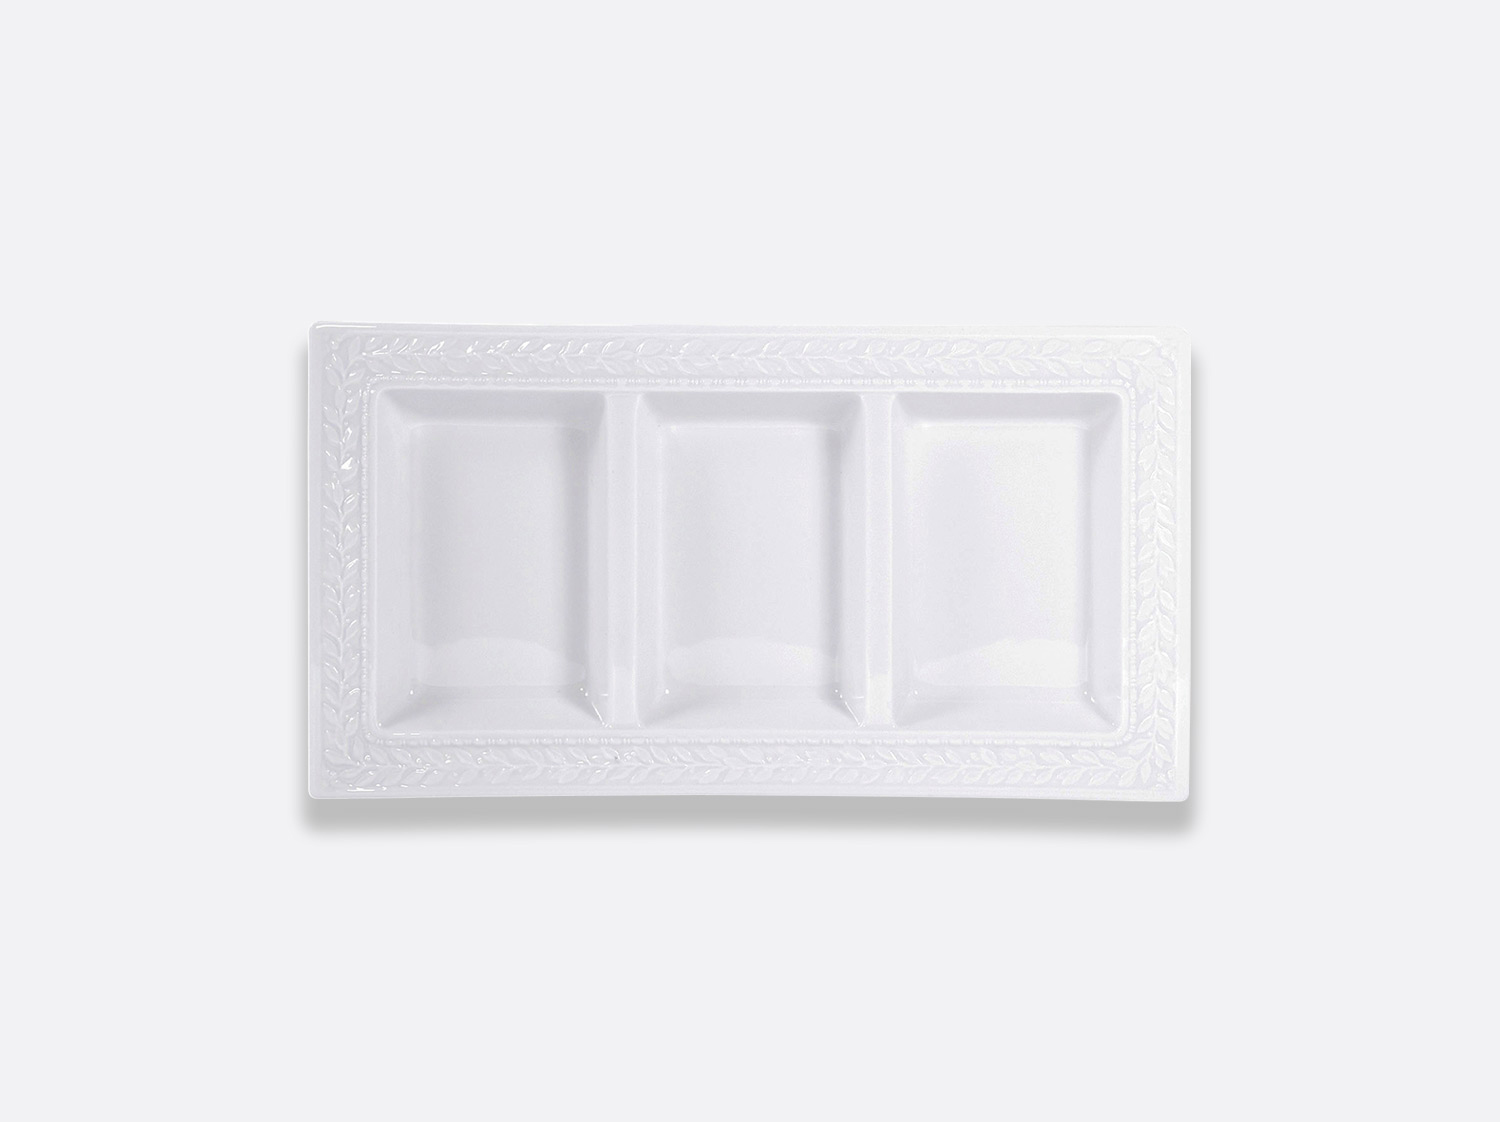 China Three-compartment tray 32,5 cm  x 17,5 cm of the collection Louvre | Bernardaud